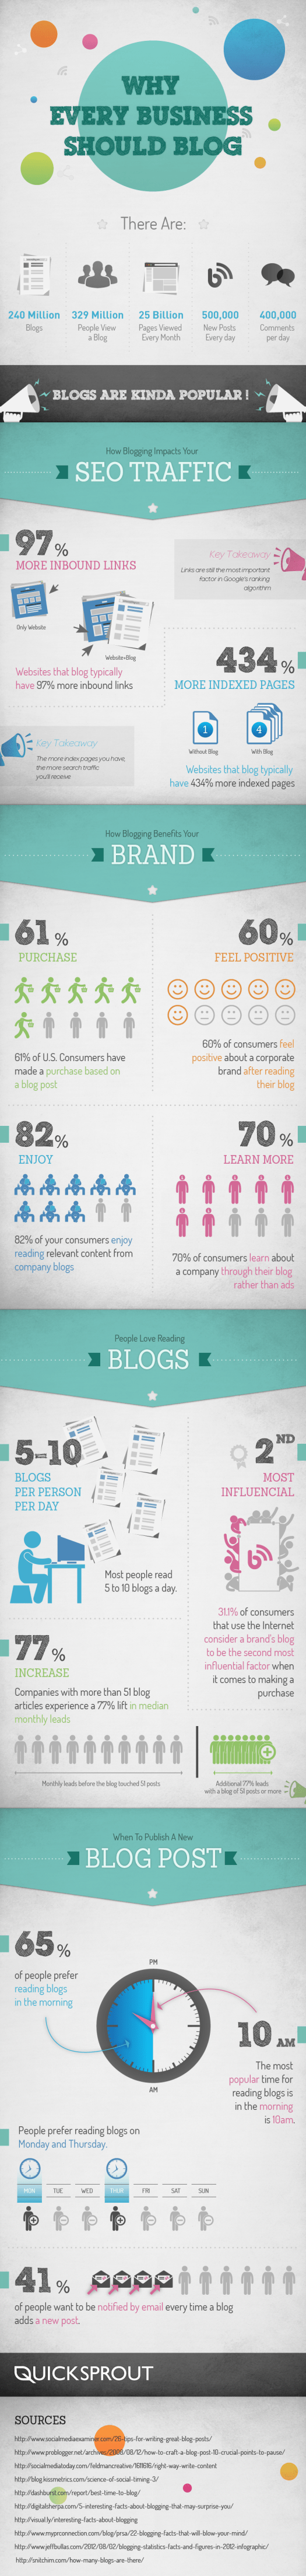 whyeverybusinessshouldblog Why Every Healthcare Organization Should Blog (Including your Staff) [INFOGRAPHIC]